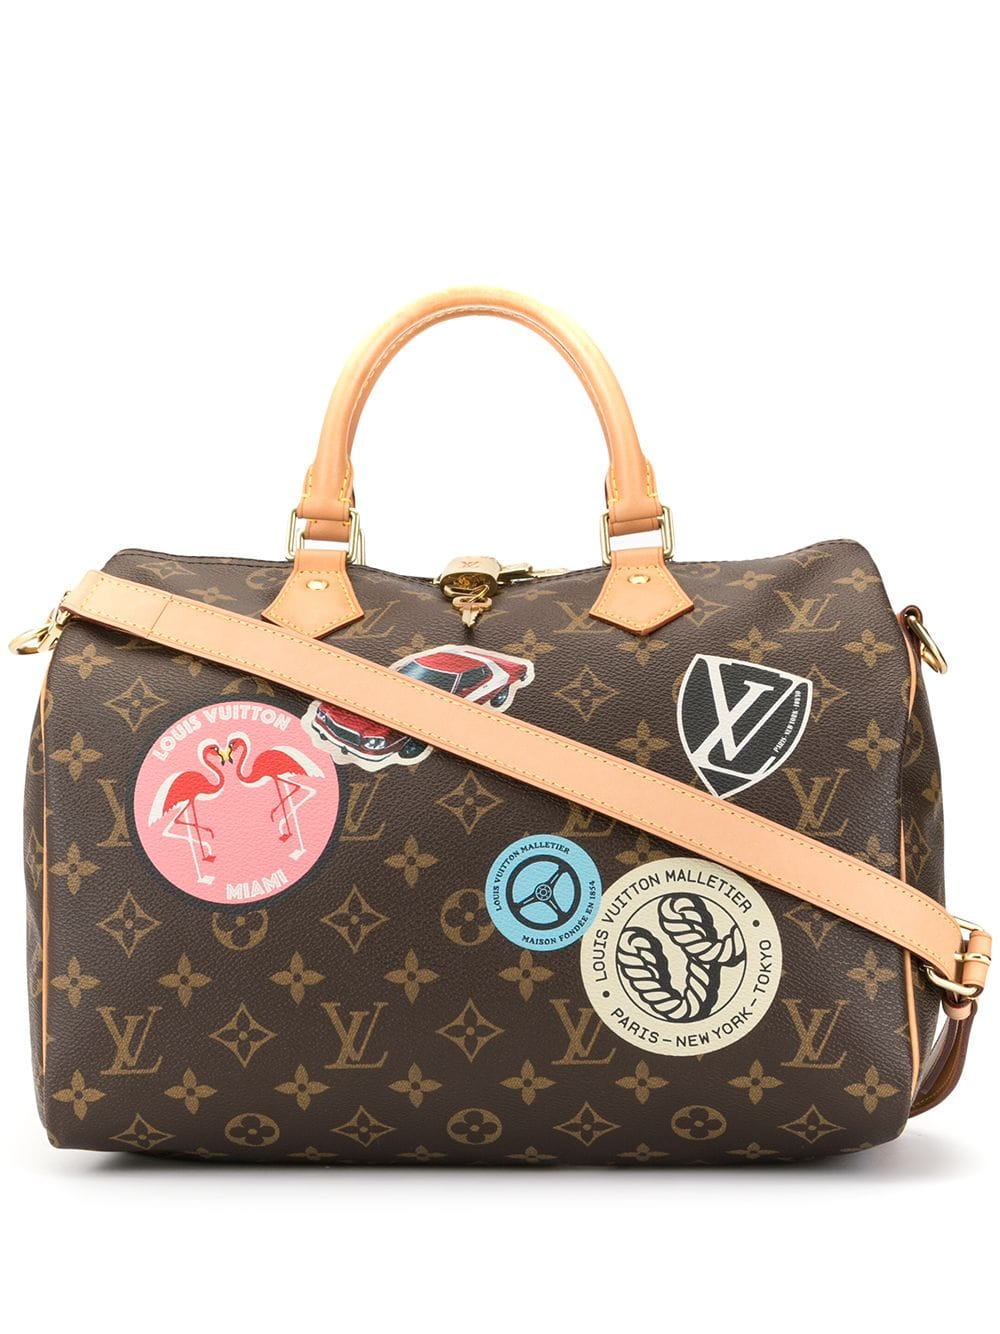 Louis Vuitton Pre Owned Speedy 30 Bandouliere 2way Hand Bag Brown Louis Vuitton Bags Speedy Bandouliere 30